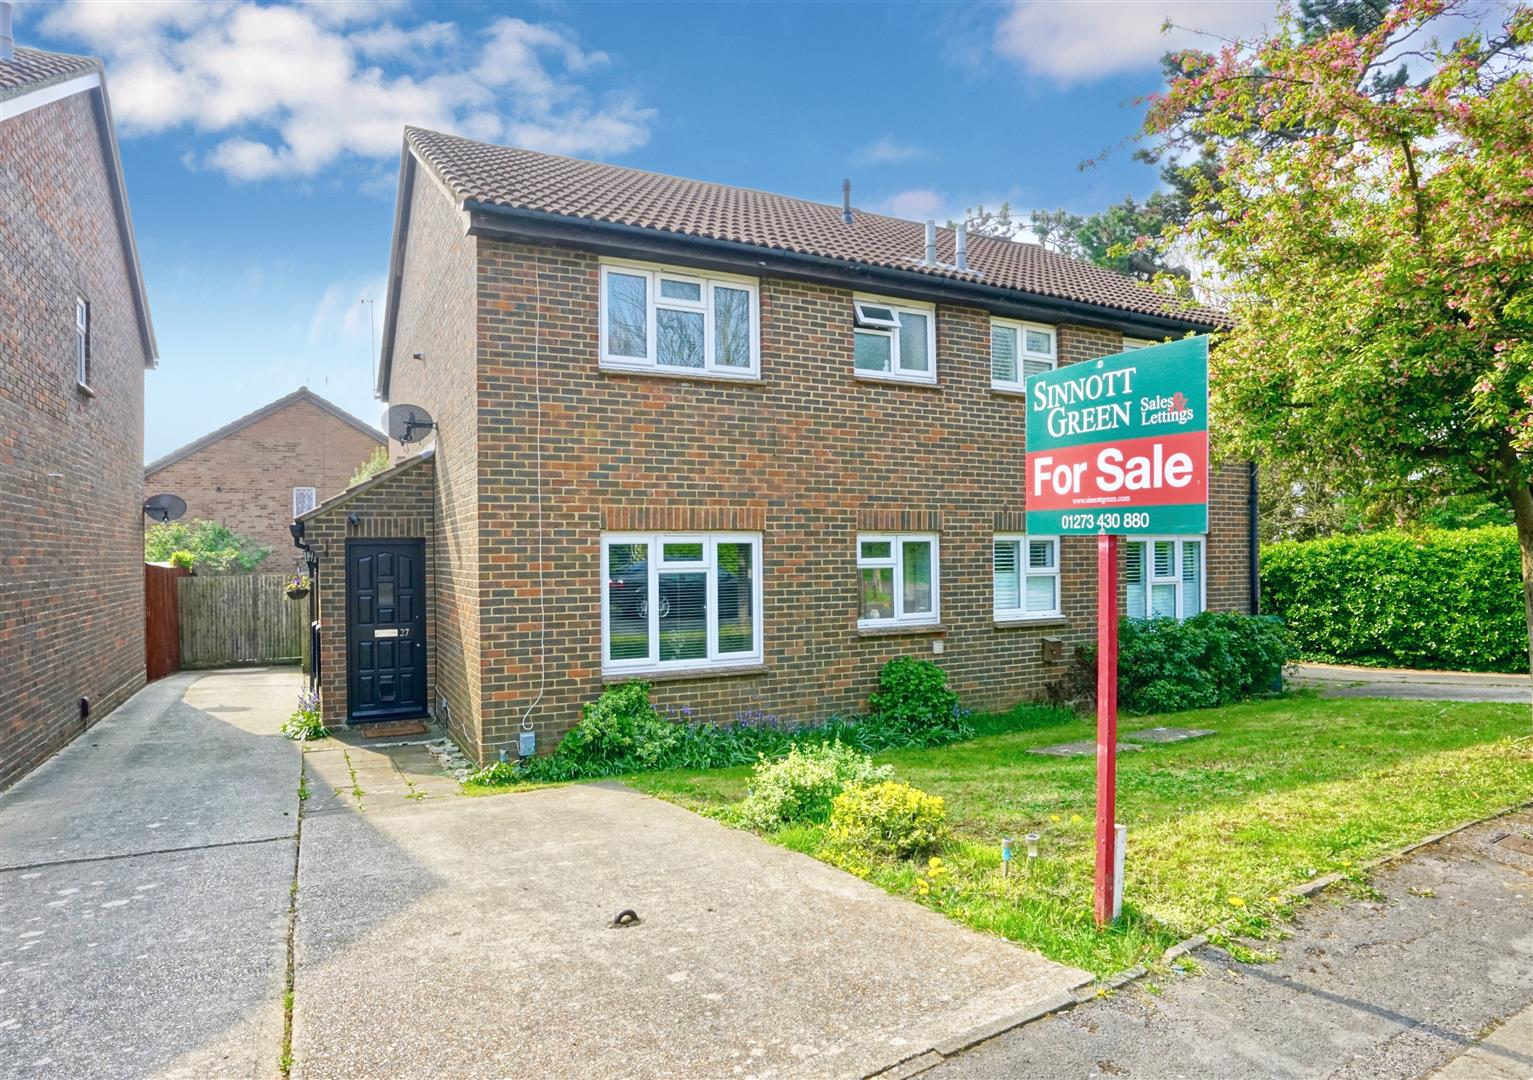 Property in Sidehill Drive, Portslade, East Sussex, BN41 2QA